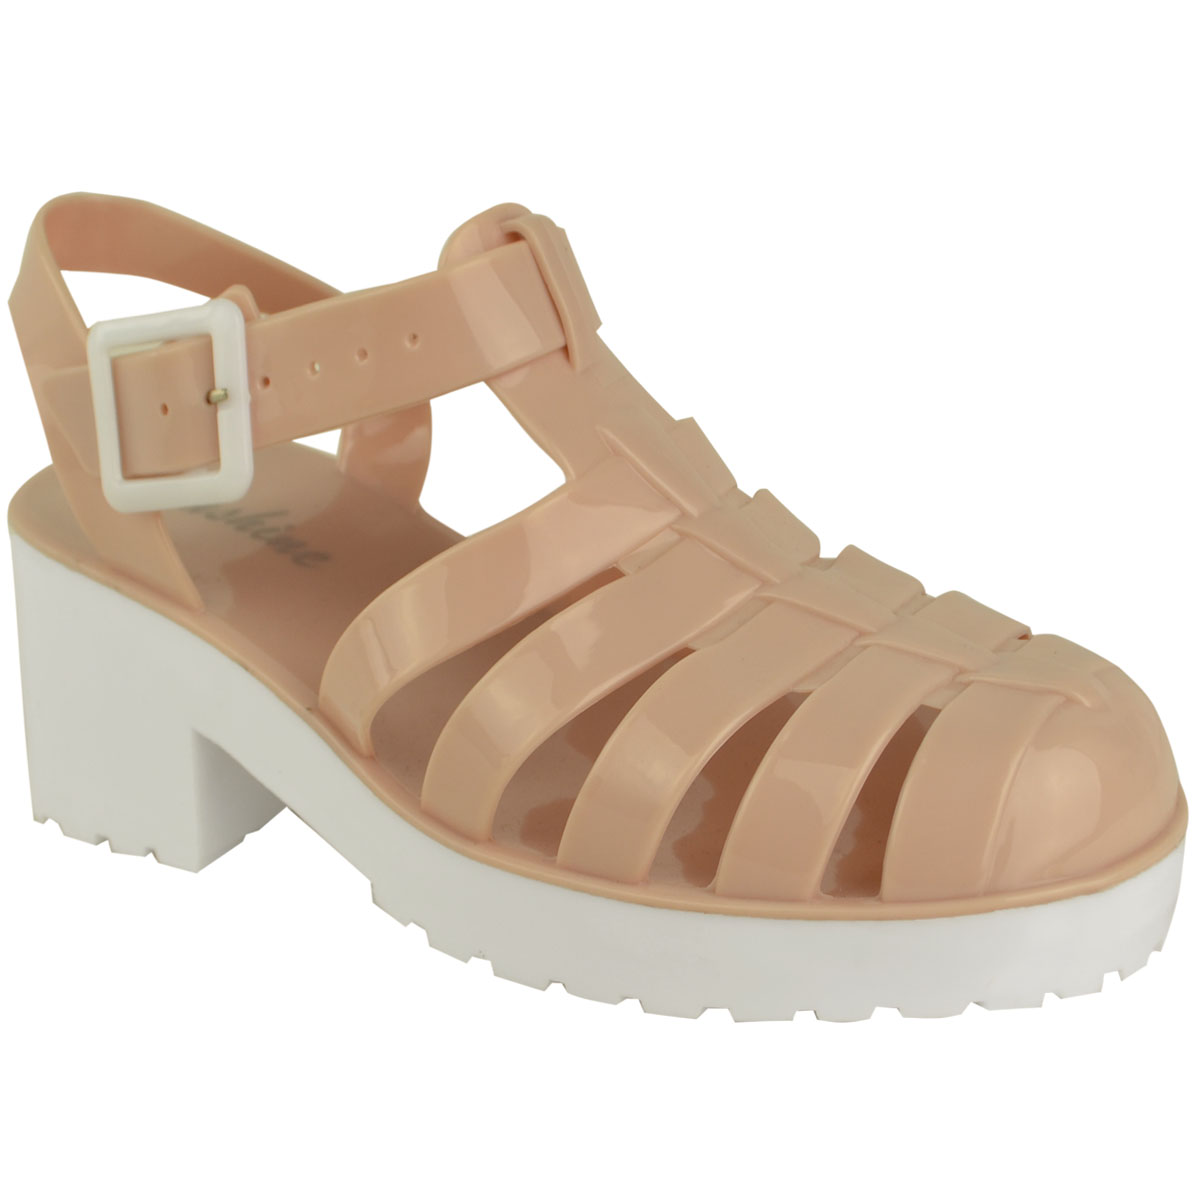 WOMENS LADIES JELLY SUMMER SANDALS PLATFORMS CHUNKY BLOCK LOW HEELS BEACH SIZE